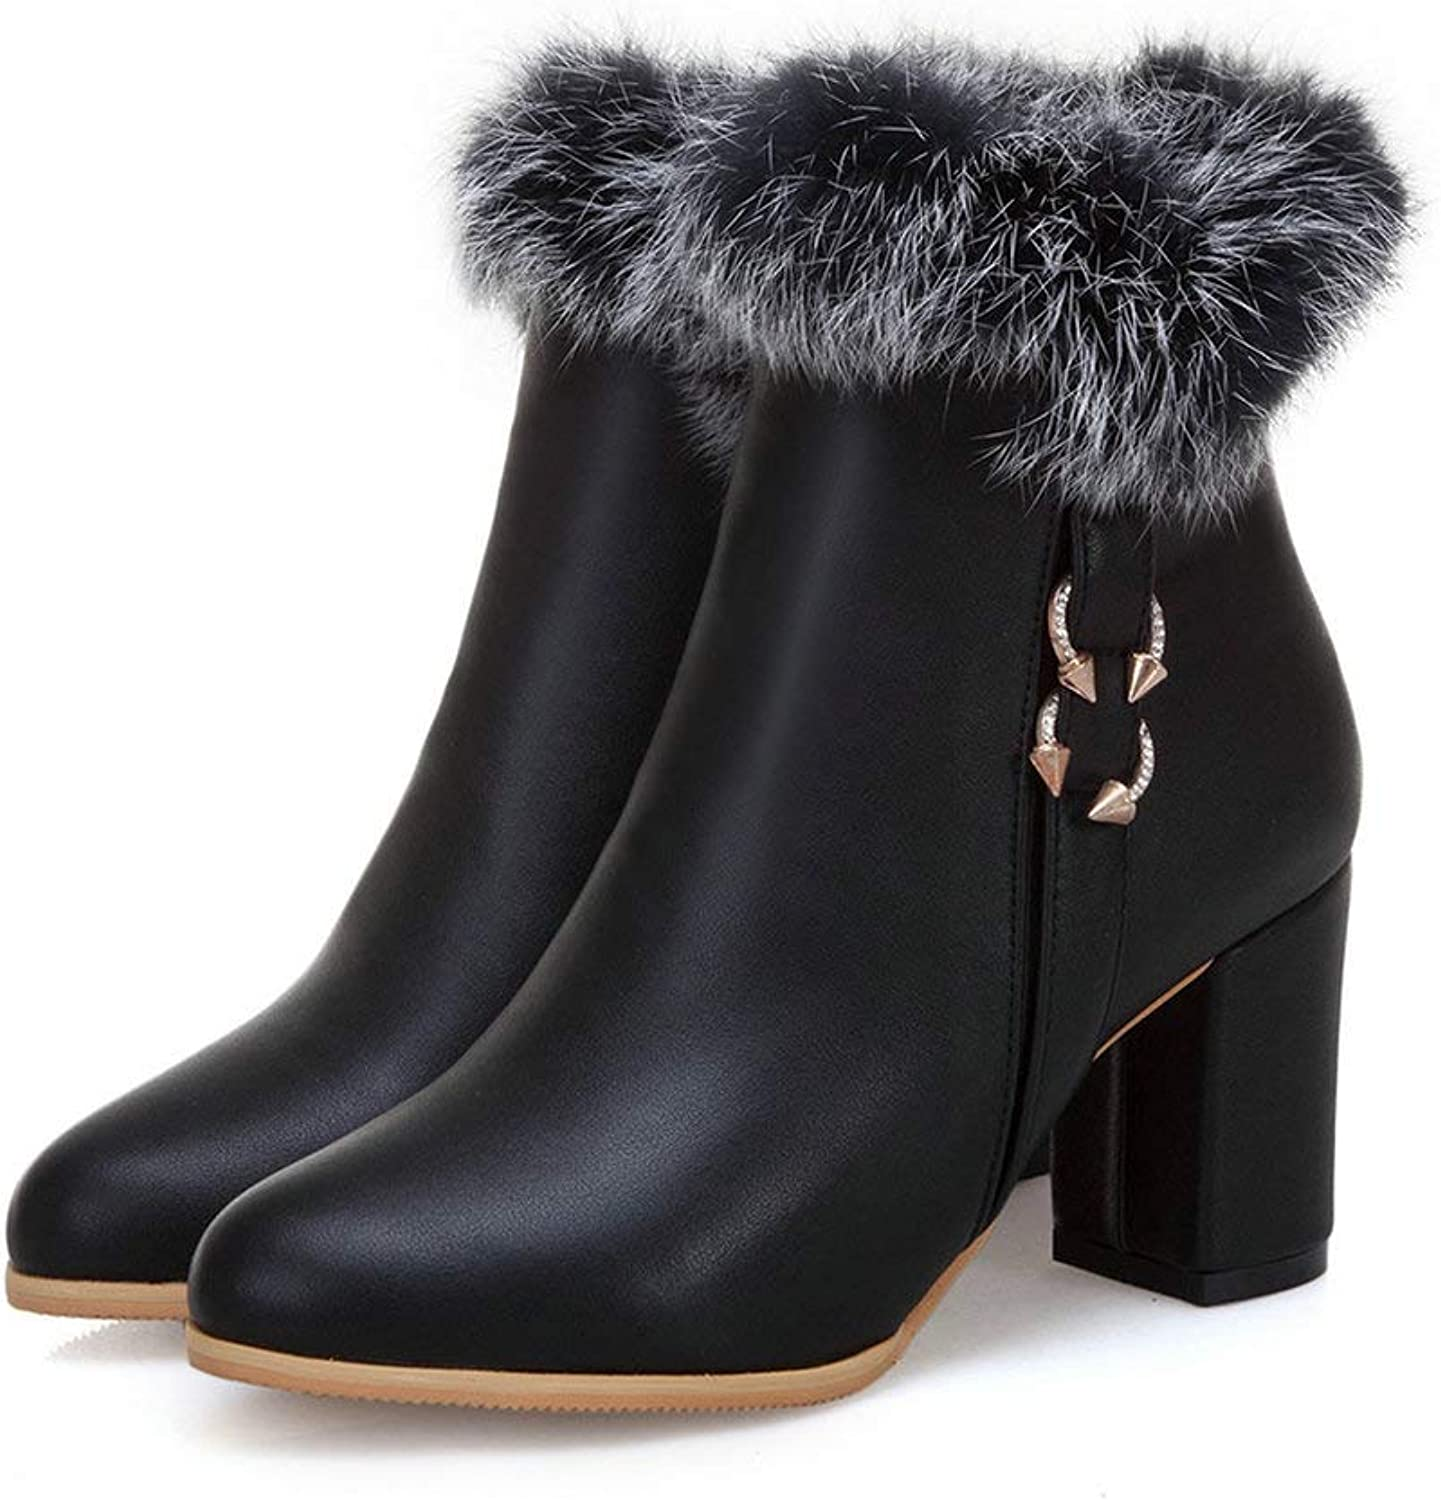 AnMengXinLing Fashion Ankle Boot Women Block High Heel Trend Rhinestone Faux Leather Round Toe Fur Lining Snow Booties Winter White Black Plus Size